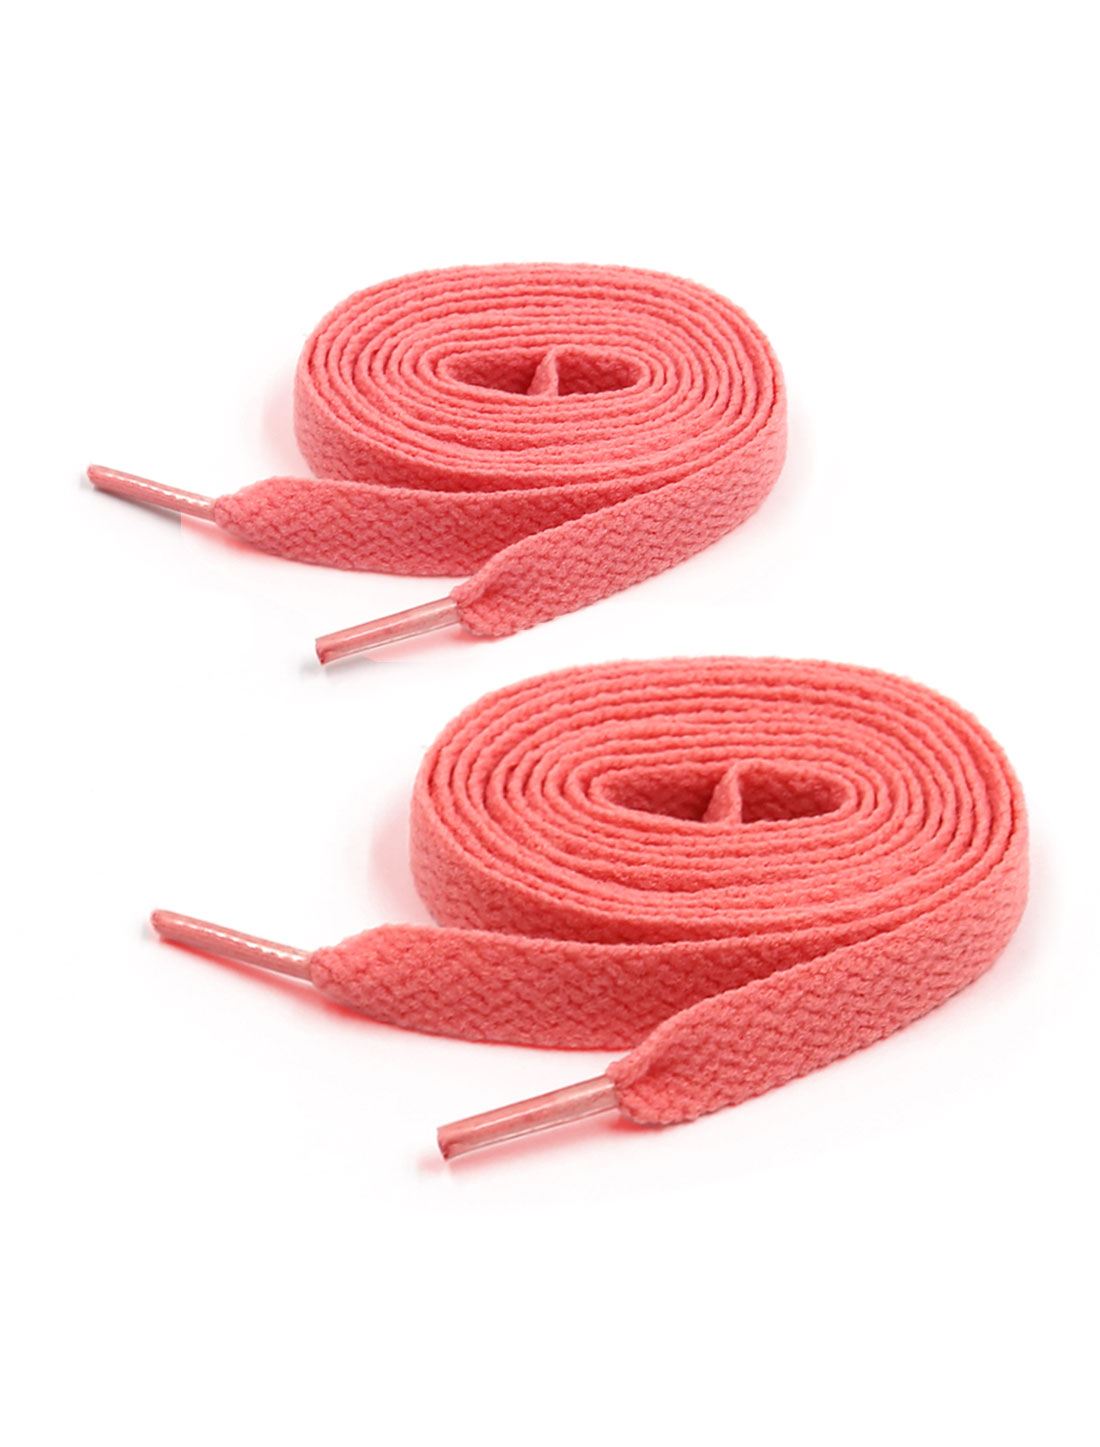 Unisex Plastic Tip 123cm Length 2 Pairs Flat Athleisure Shoes Strings Salmon